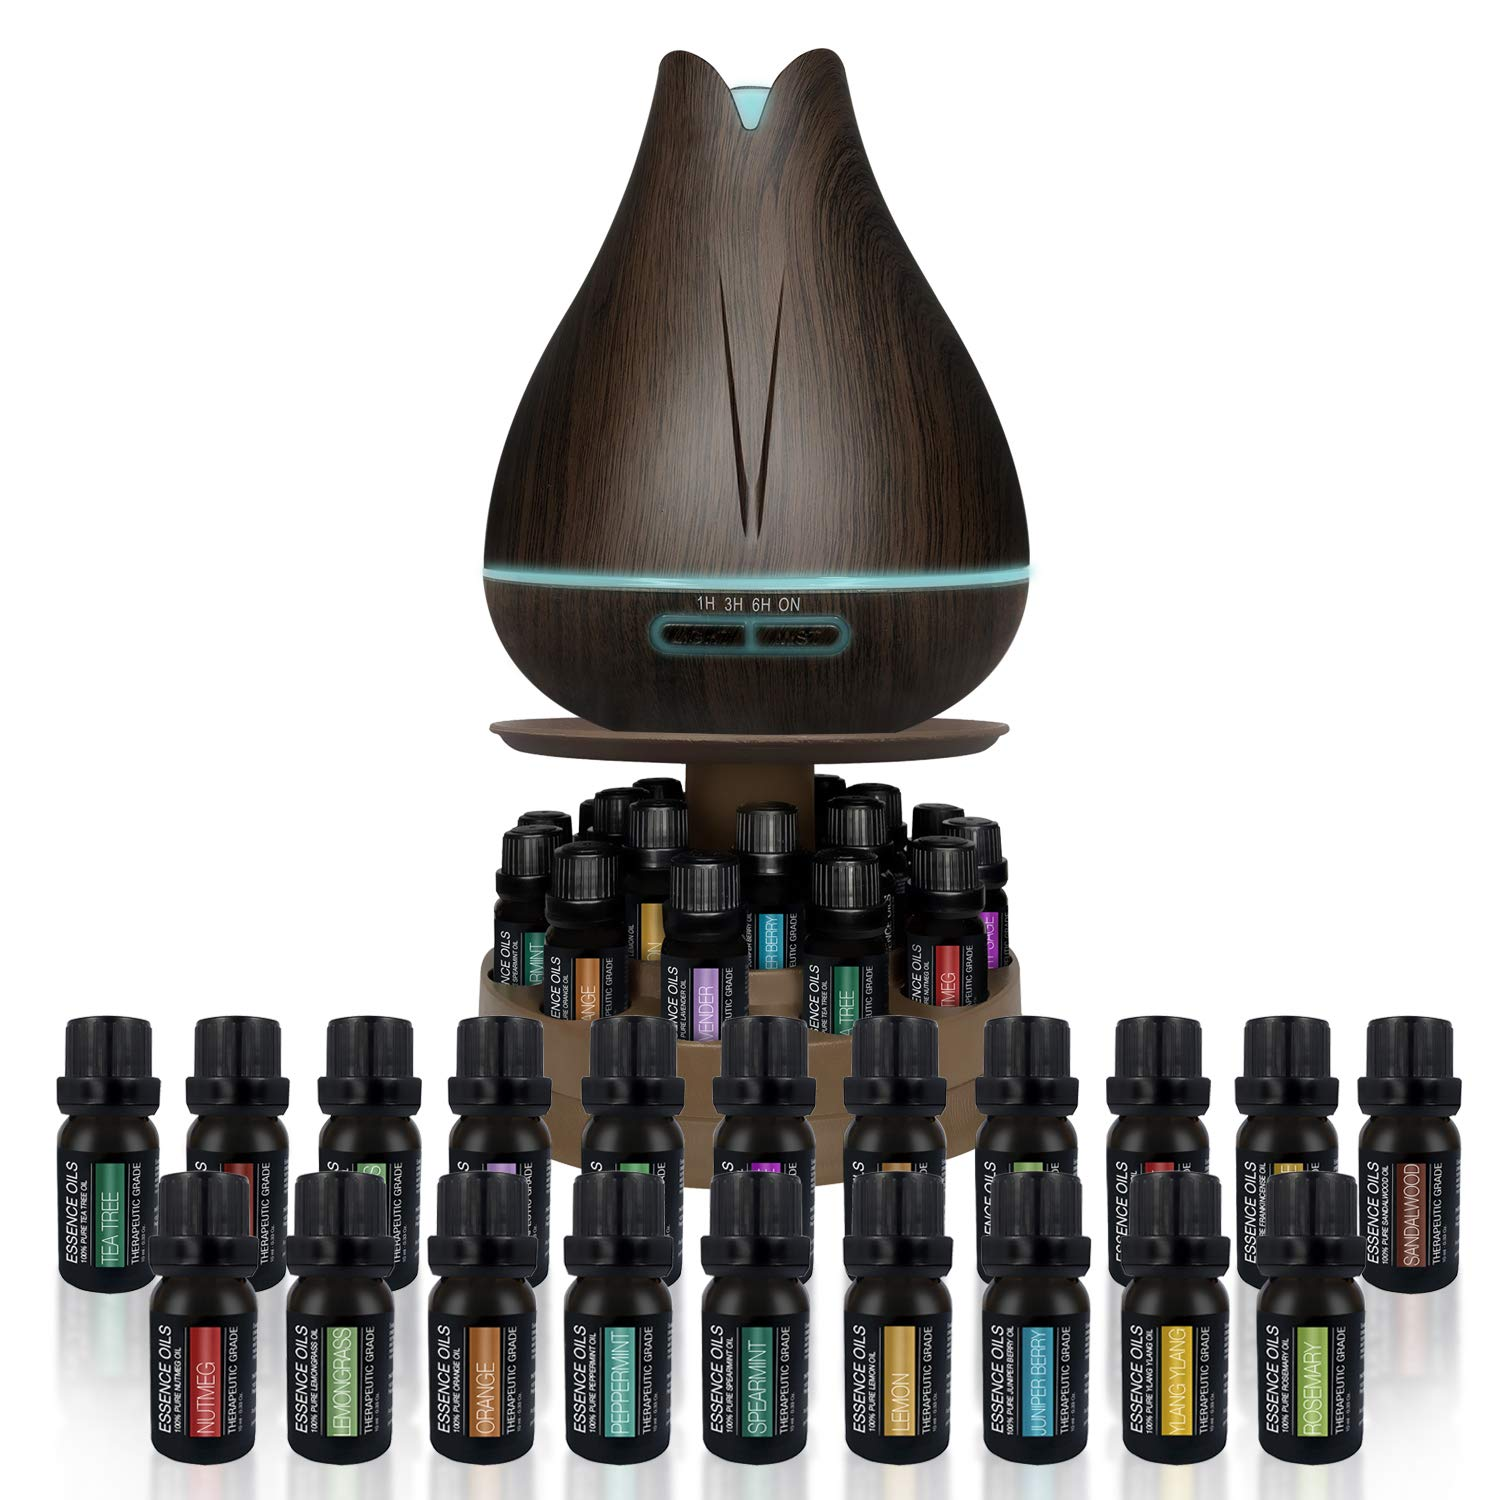 400ml Ultrasonic Diffuser with 20 Essential Plant Oils